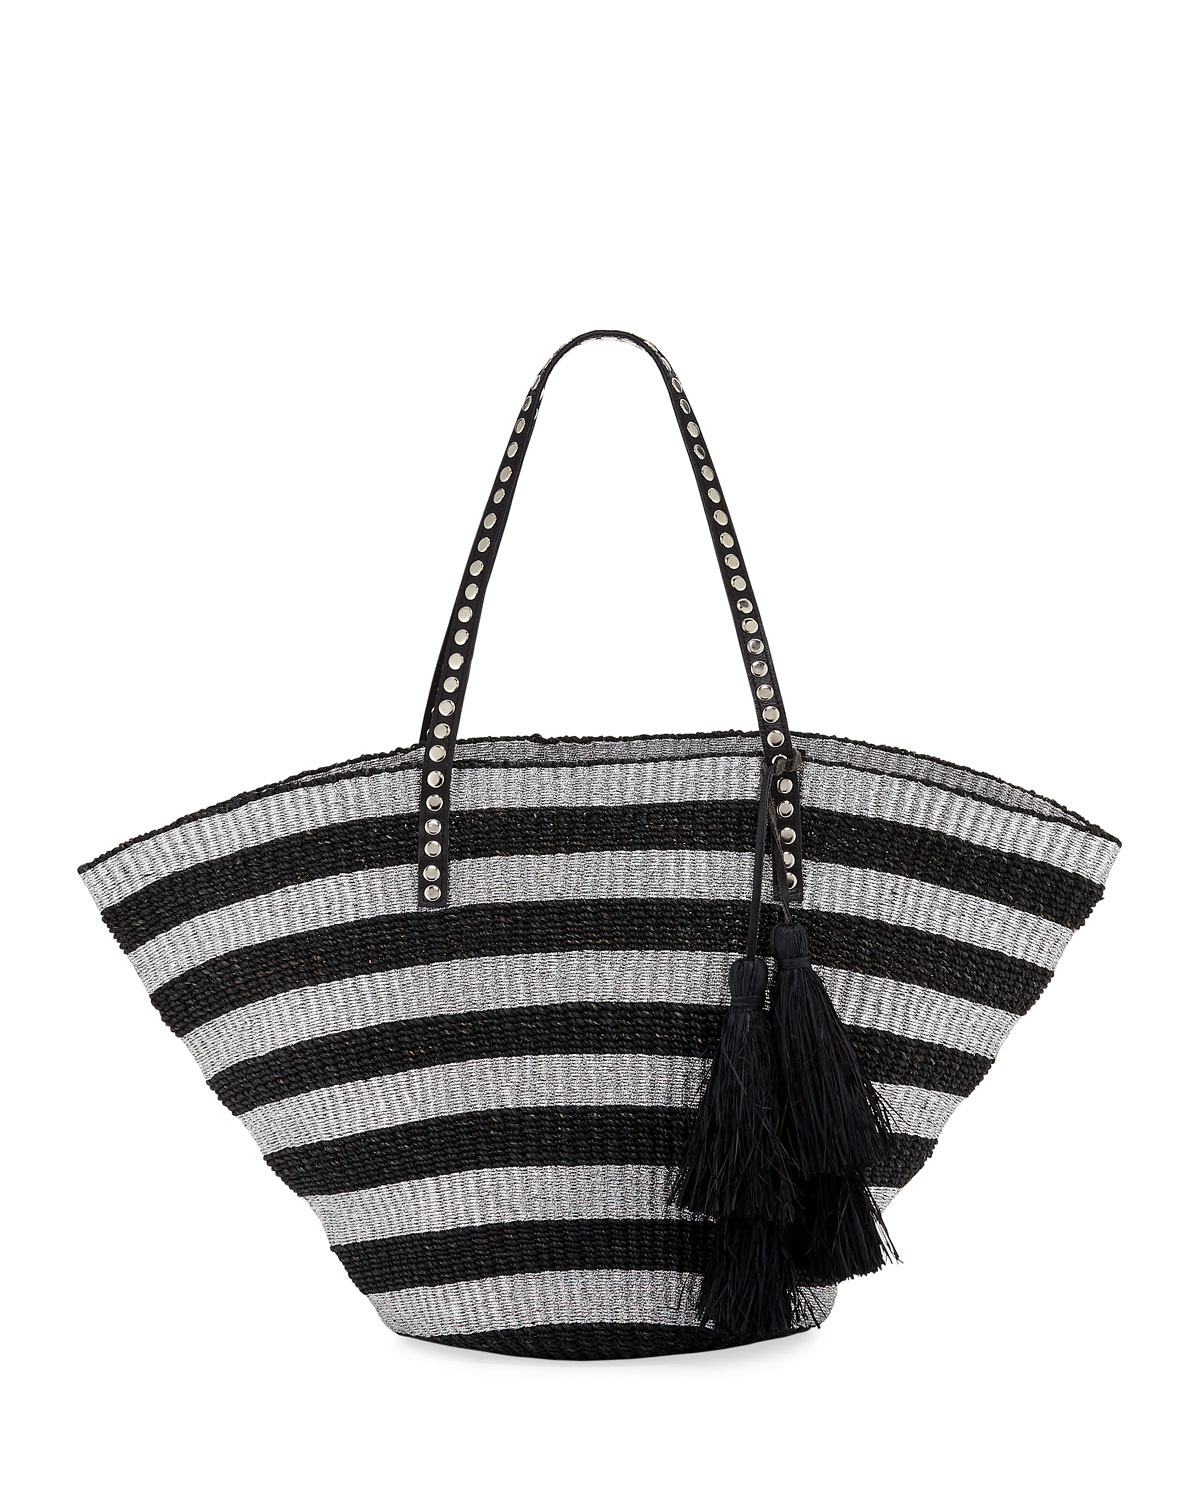 Sunni Large Straw Beach Tote Bag